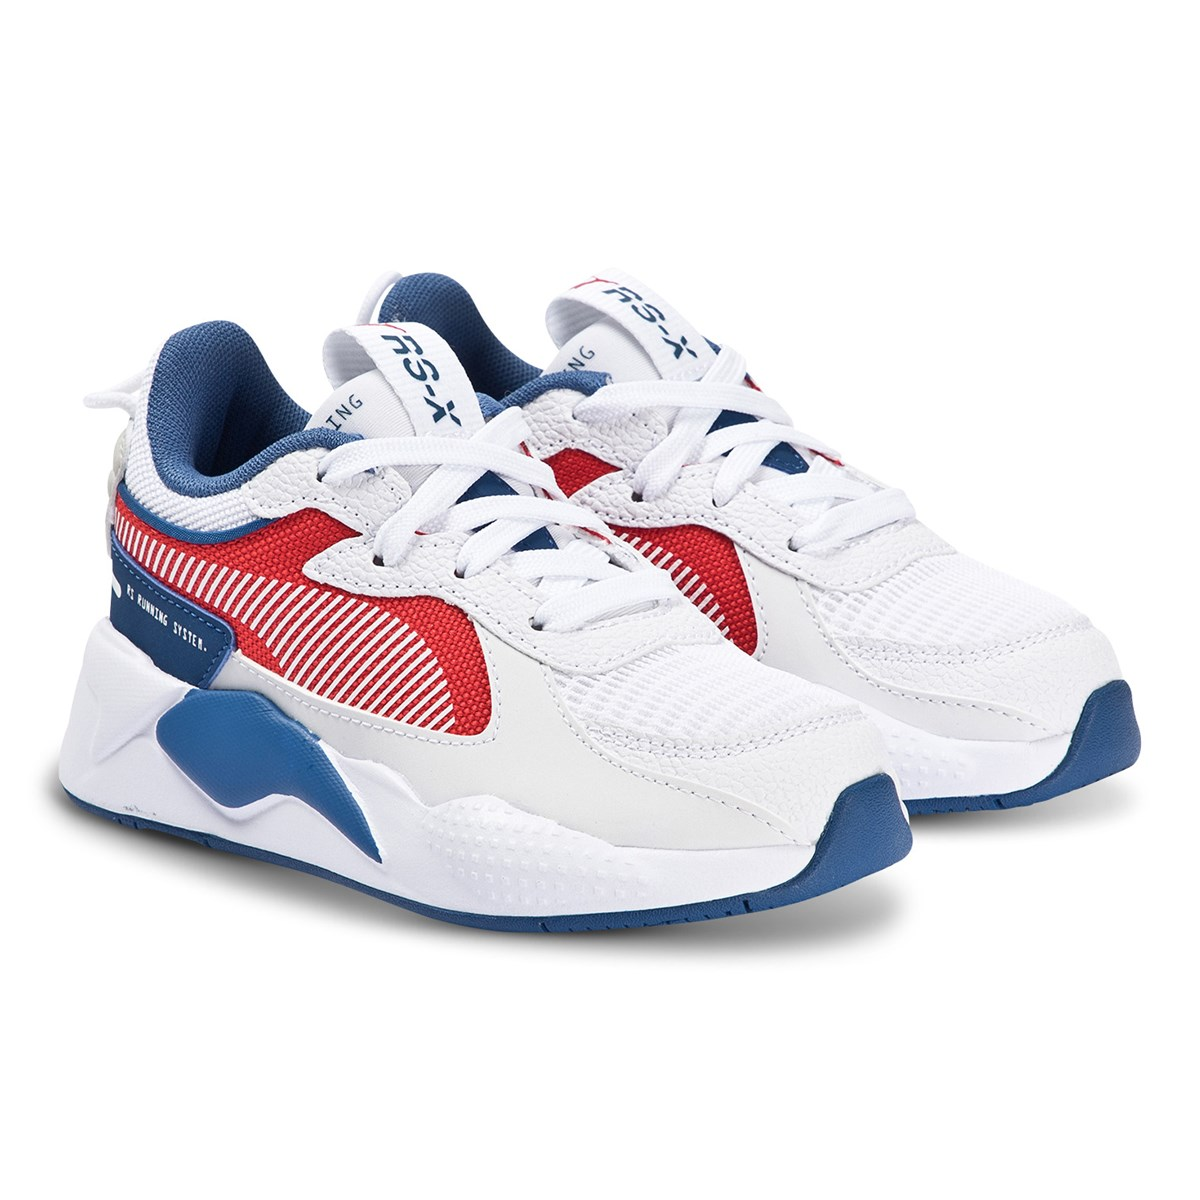 Puma RS X Hard Drive Sneakers White Babyshop.no